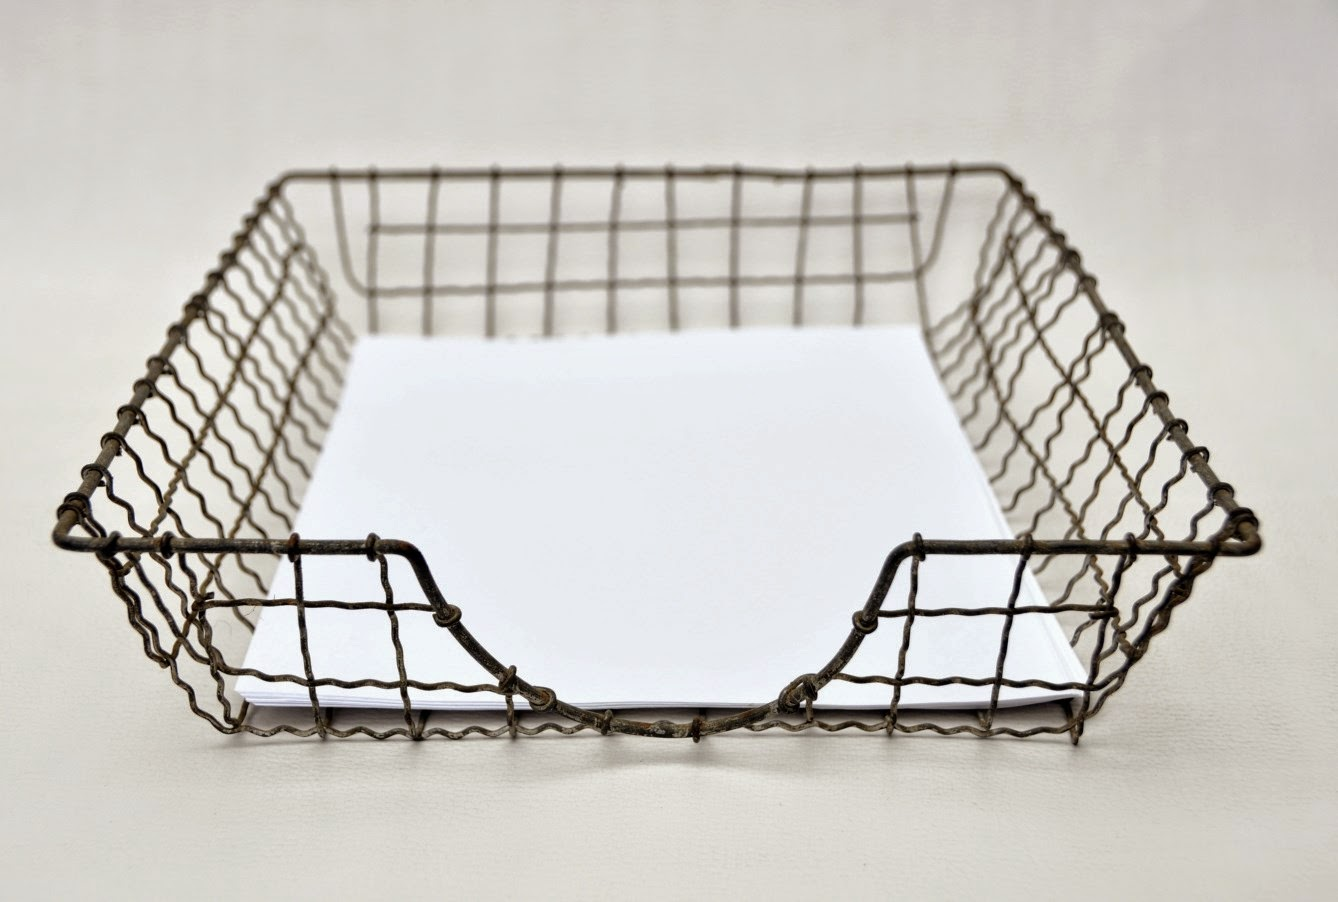 lulu   yesteryear redeemed: Vintage Wire Paper Tray, circa 1950-70 SOLD